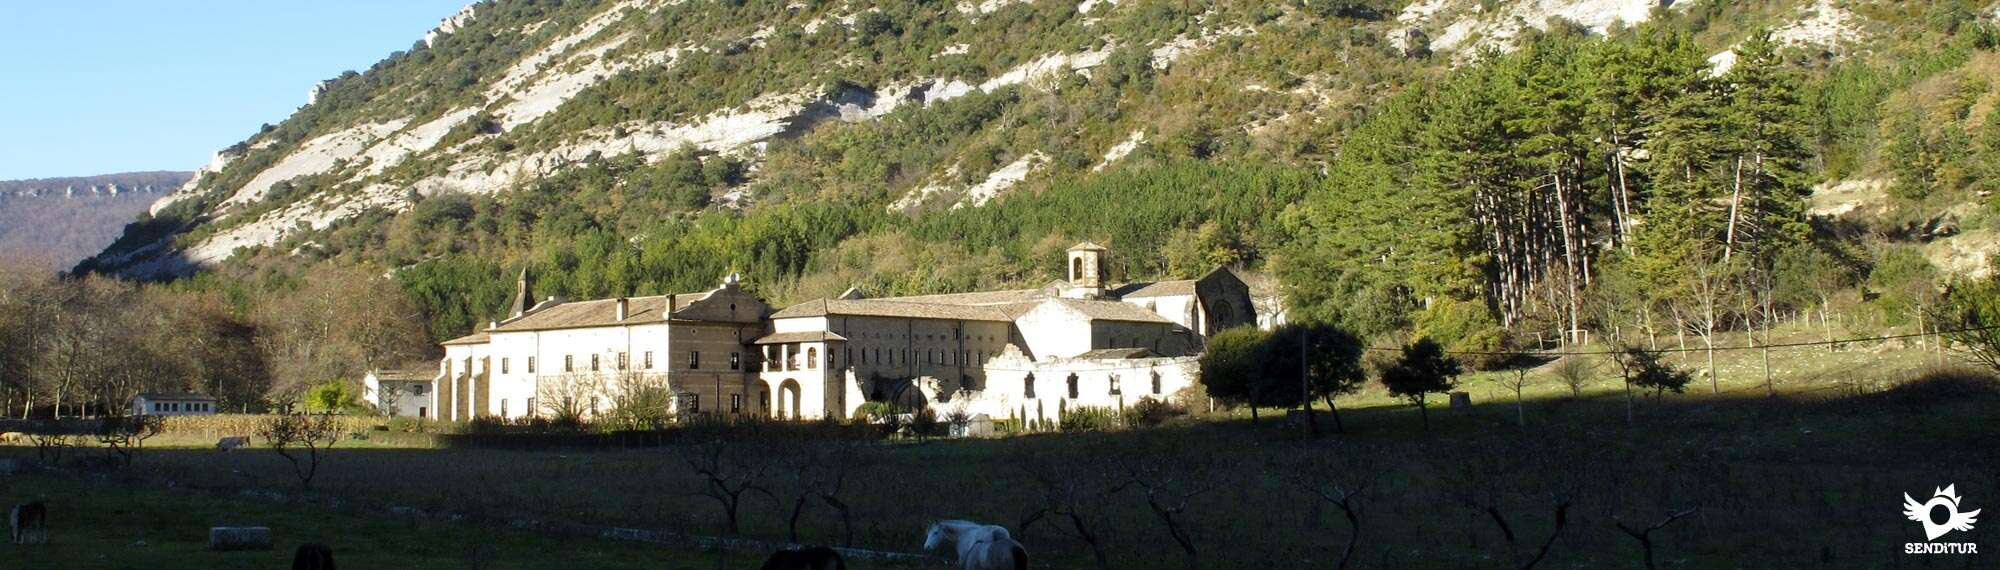 Route of the Monasteries and Sanctuaries of Navarra